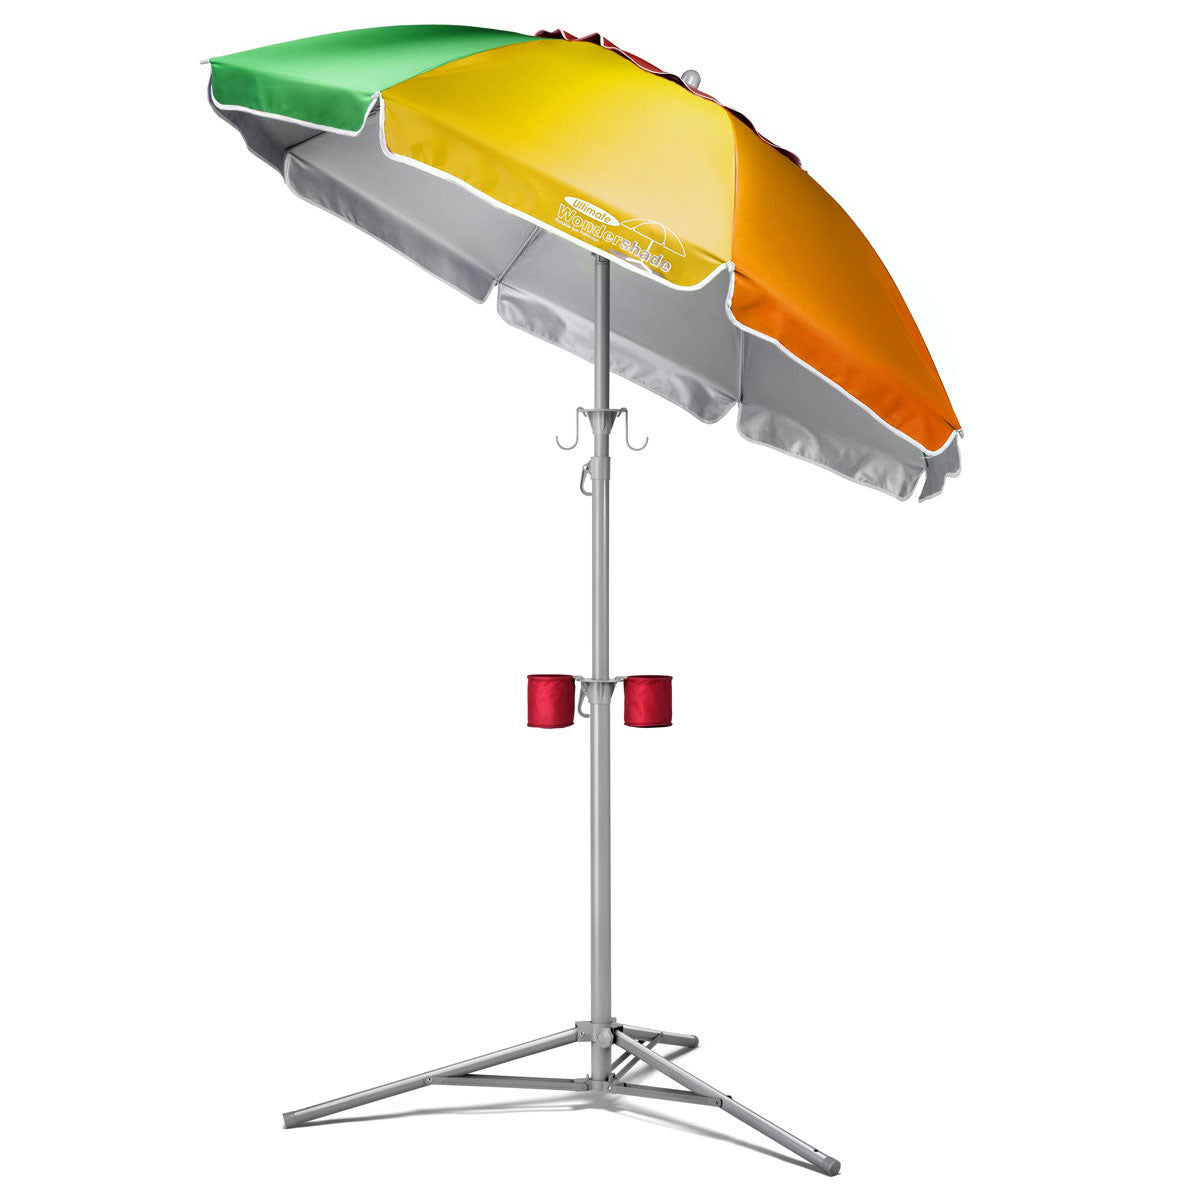 Wondershade Ultimate Portable Sun Shade Umbrella, Lightweight Adjustable Instant Sun Protection - Rainbow